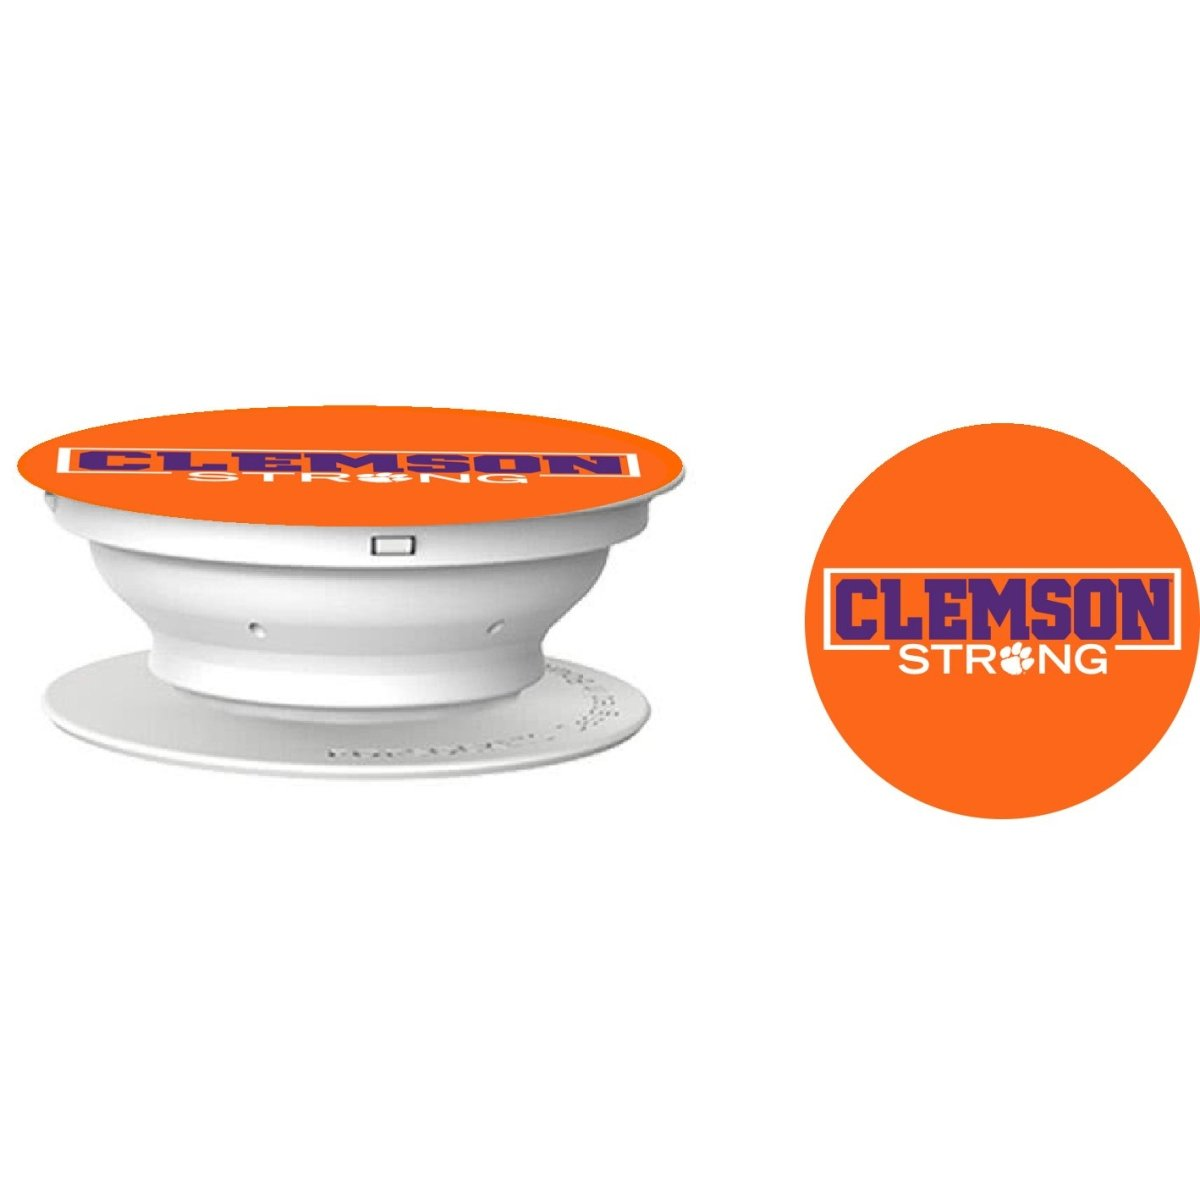 Clemson Strong Phone Popsocket - Mr. Knickerbocker